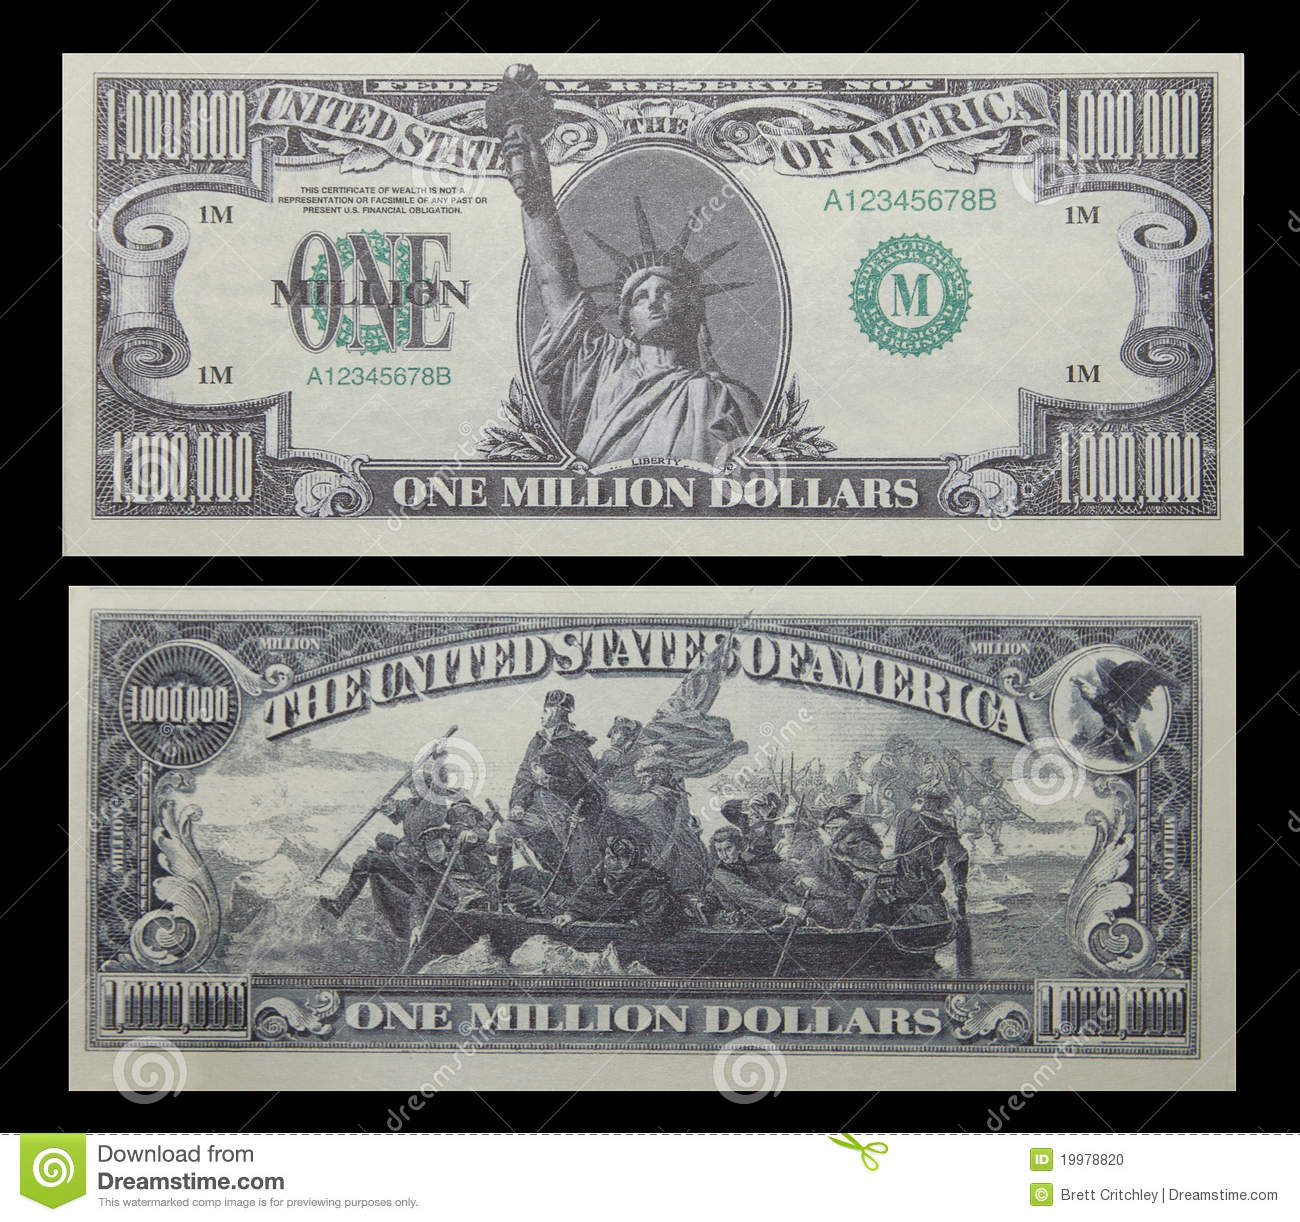 One Million Dollar Bill American Money Fake 1 Mill Note